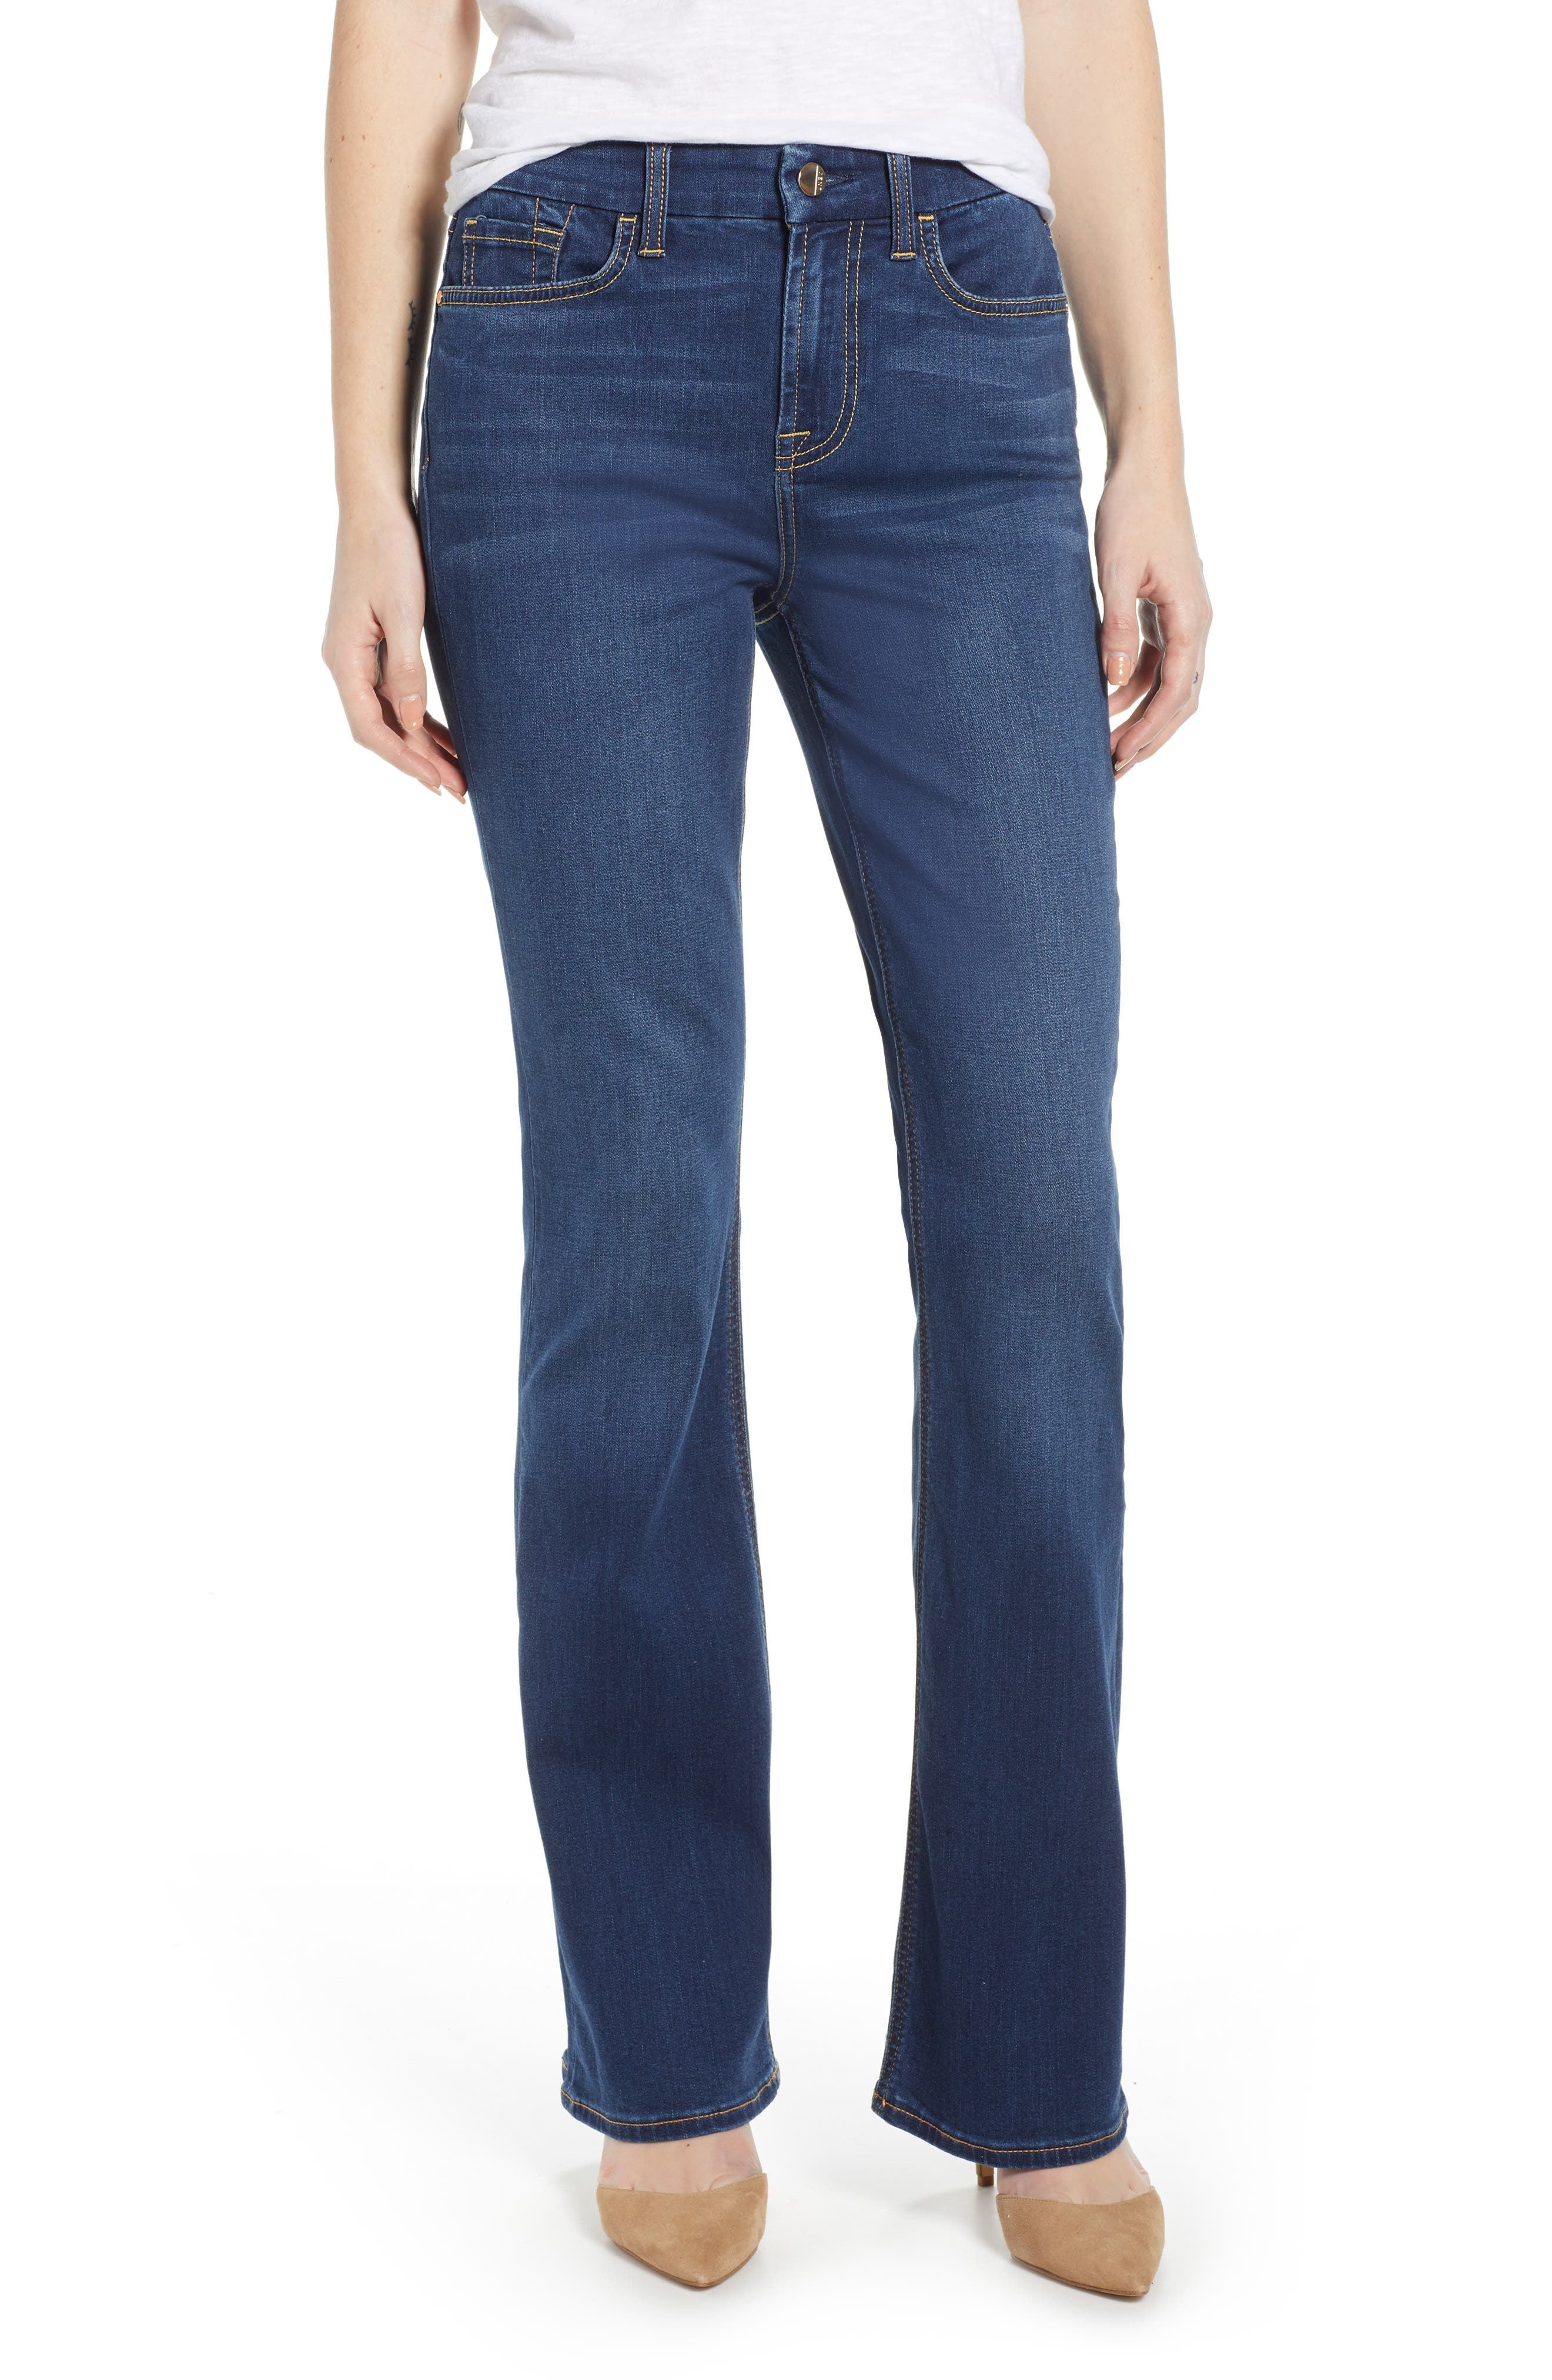 JEN7 BY 7 FOR ALL MANKIND, Slim Bootcut Jeans, Main thumbnail 1, color, CLASSIC MEDIUM BLUE